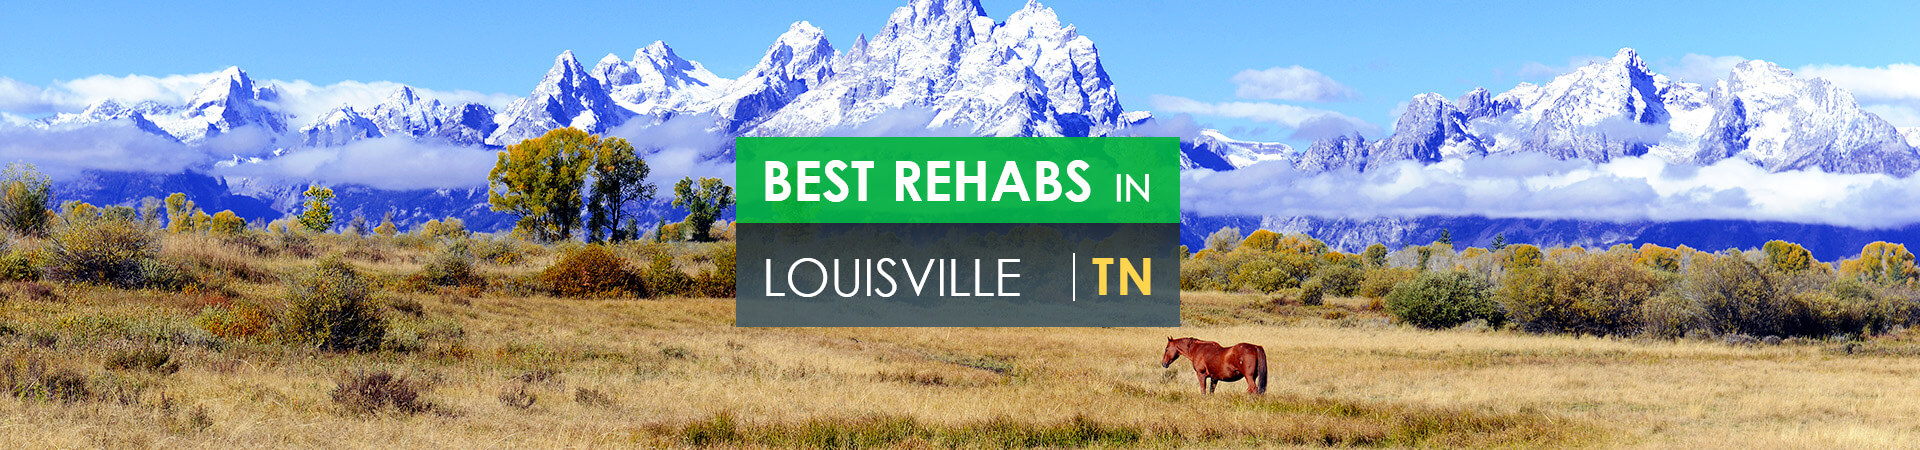 Best rehabs in Jackson, TN